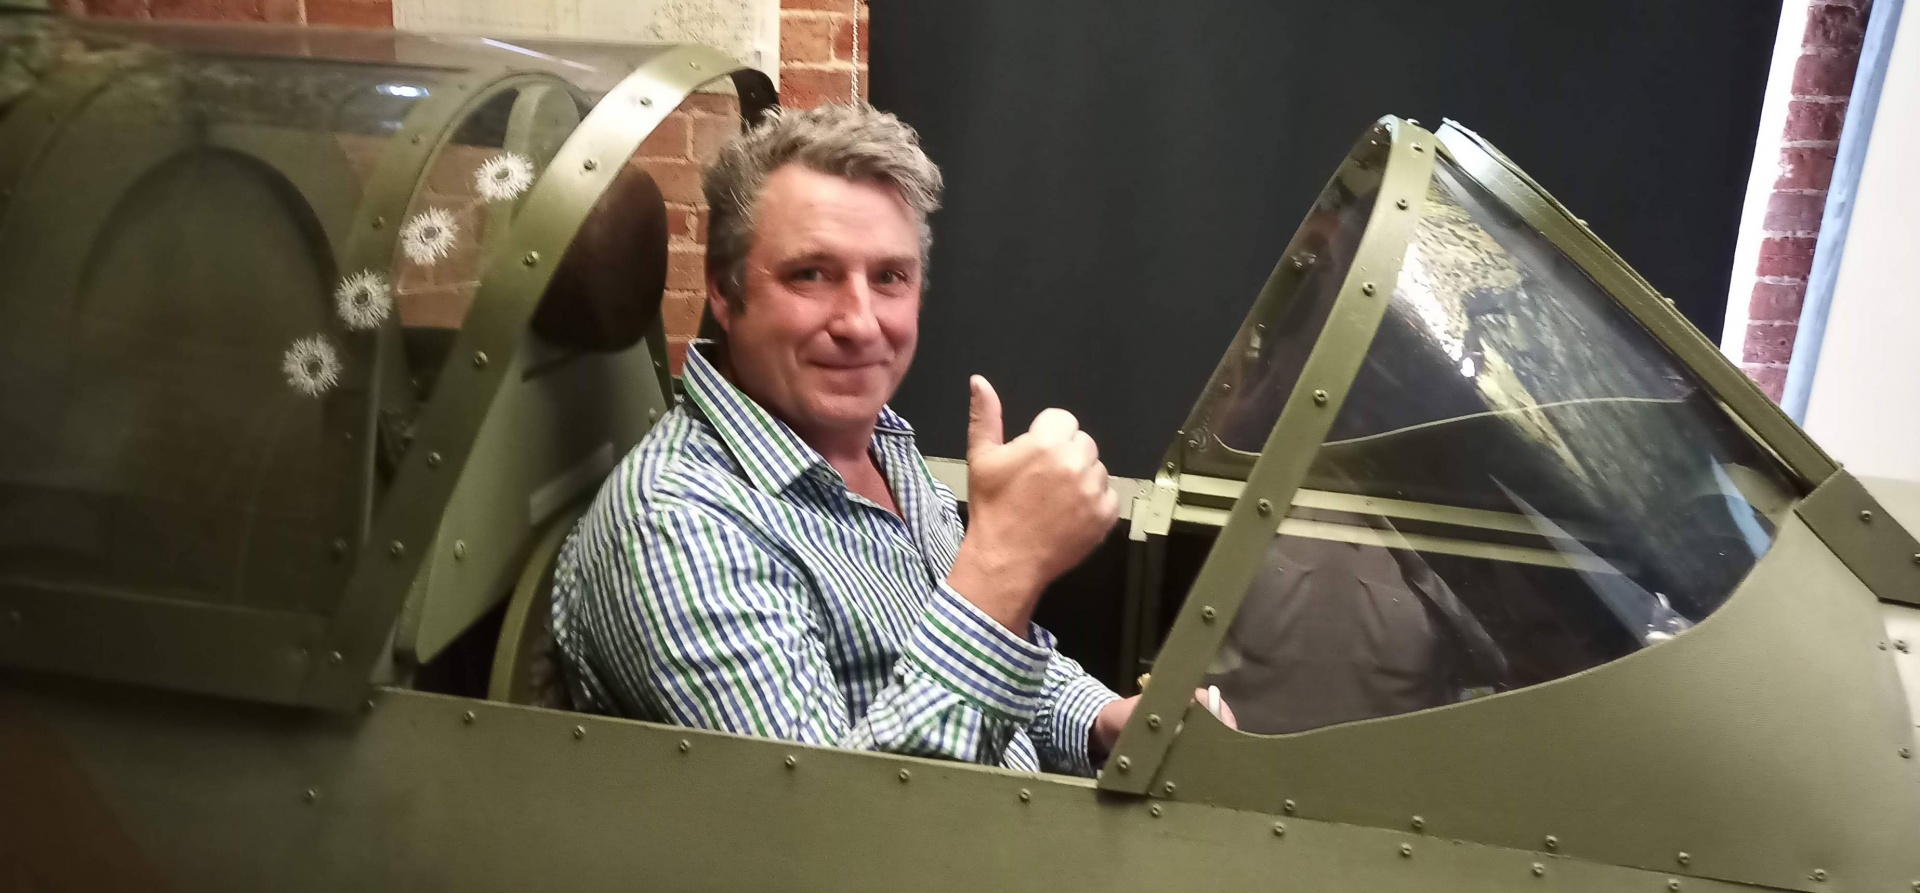 Two Hour Spitfire Flight Simulator In Warwickshire